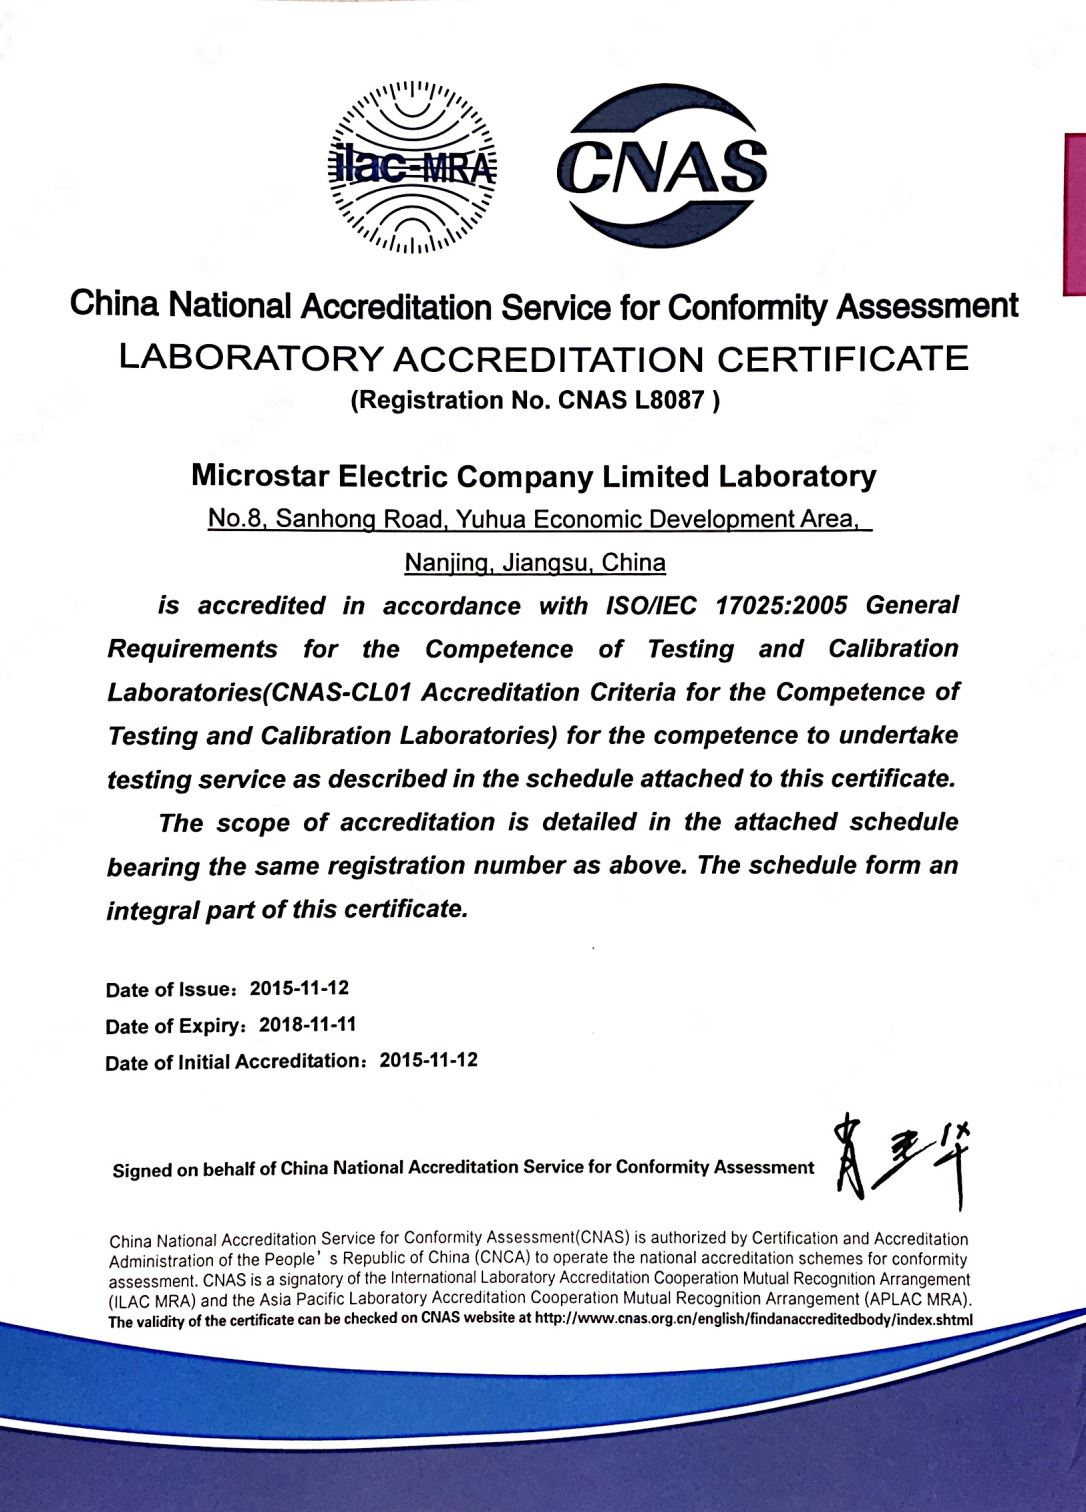 IEC17025 Lab Accreditation (CNAS) Certificate